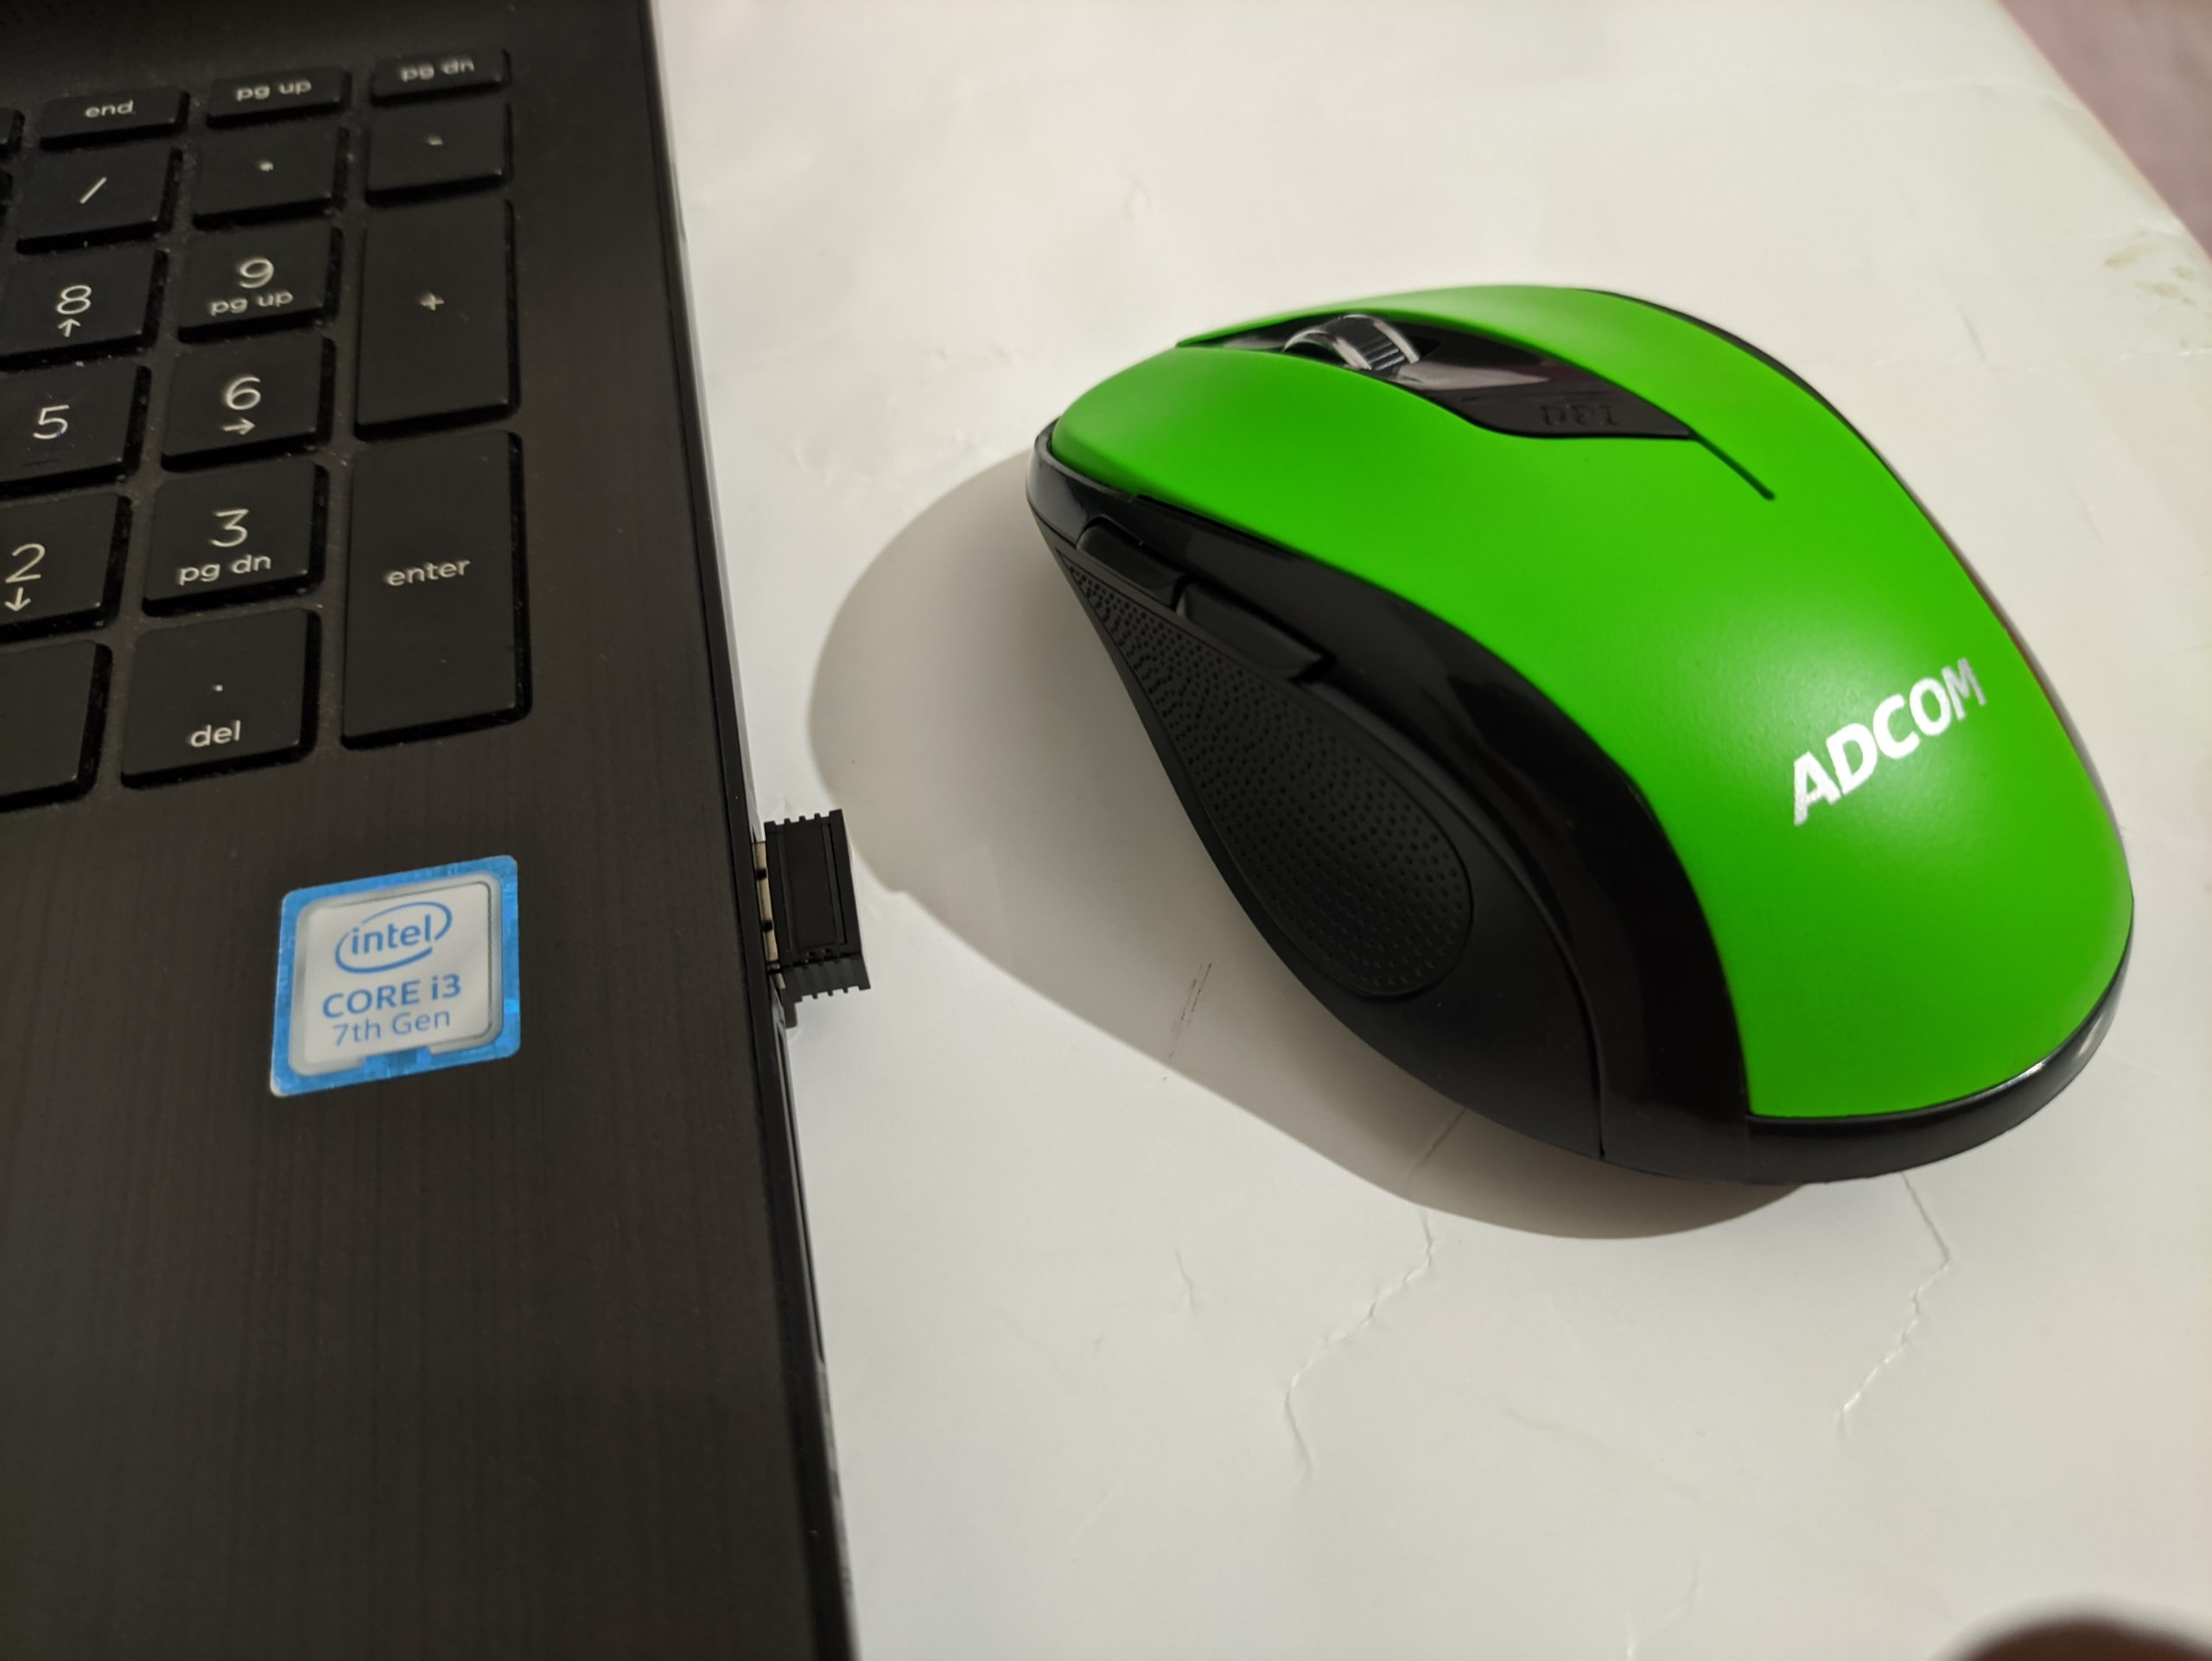 Adcom 6D Wireless Mouse: A budget-friendly mouse